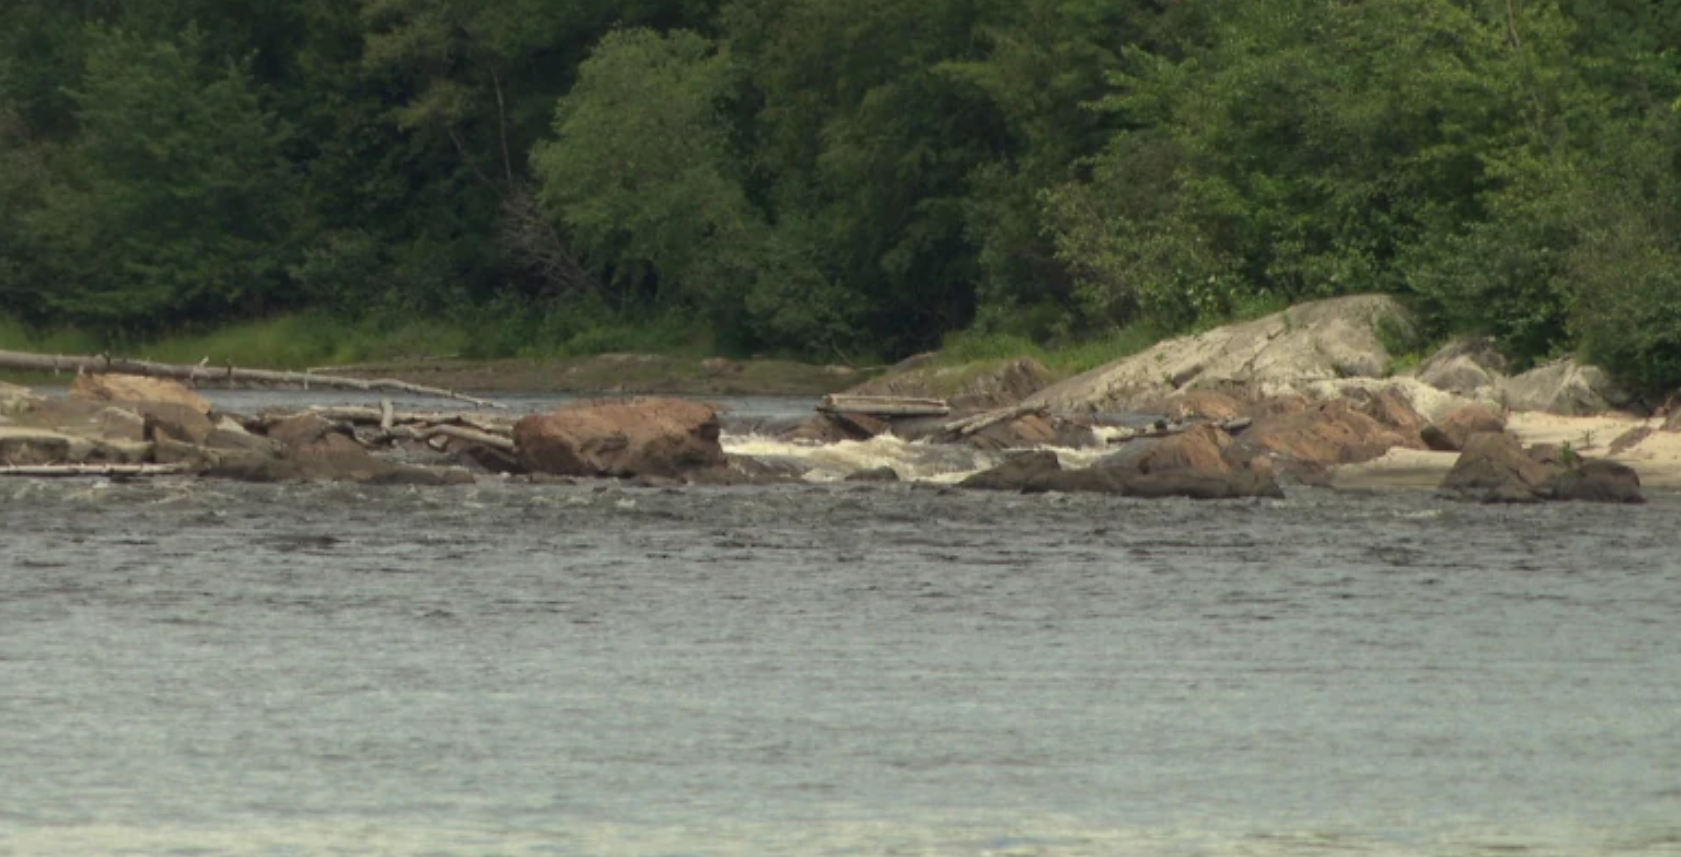 A photo of the rapids - Credit: CBC